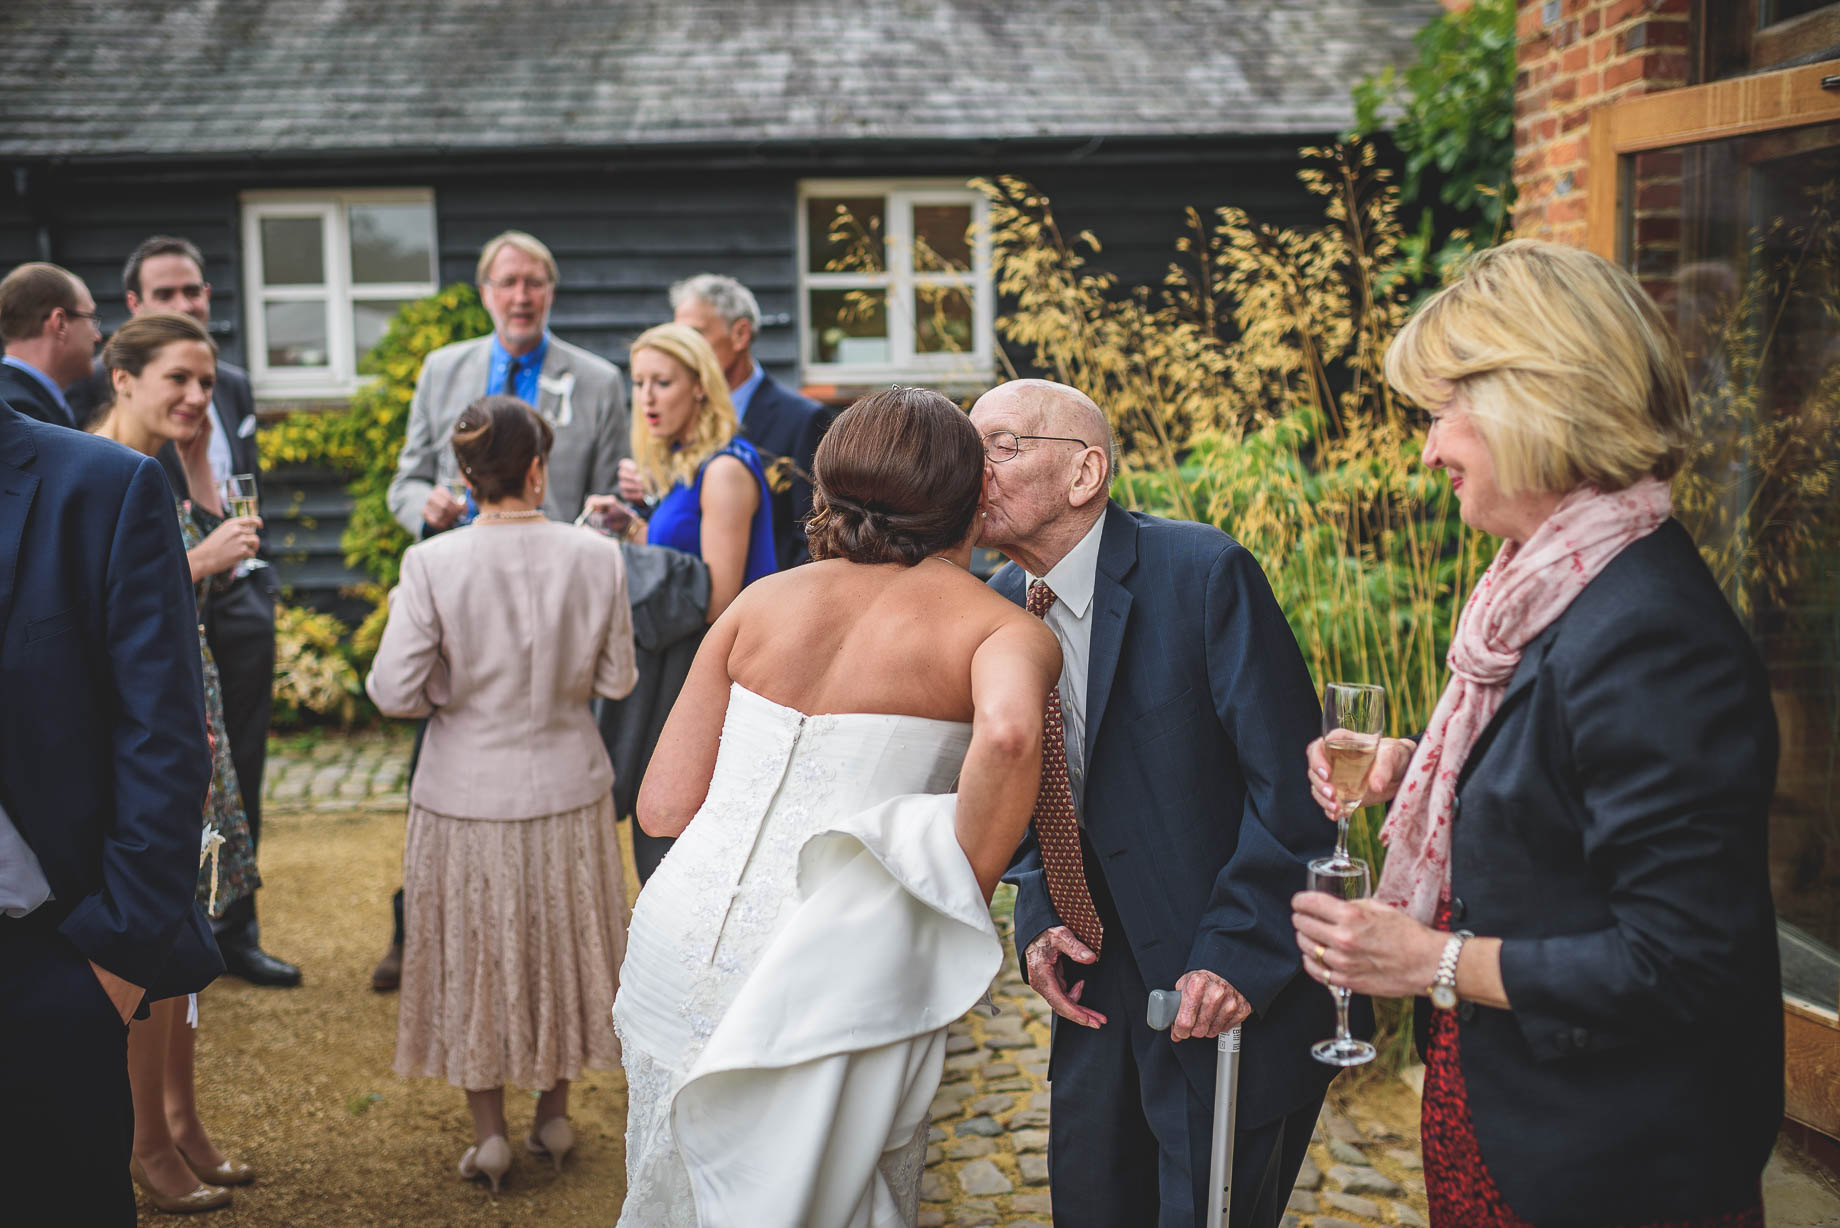 Bury Court Barn wedding photography - Guy Collier Photography - Karen and John (78 of 166)